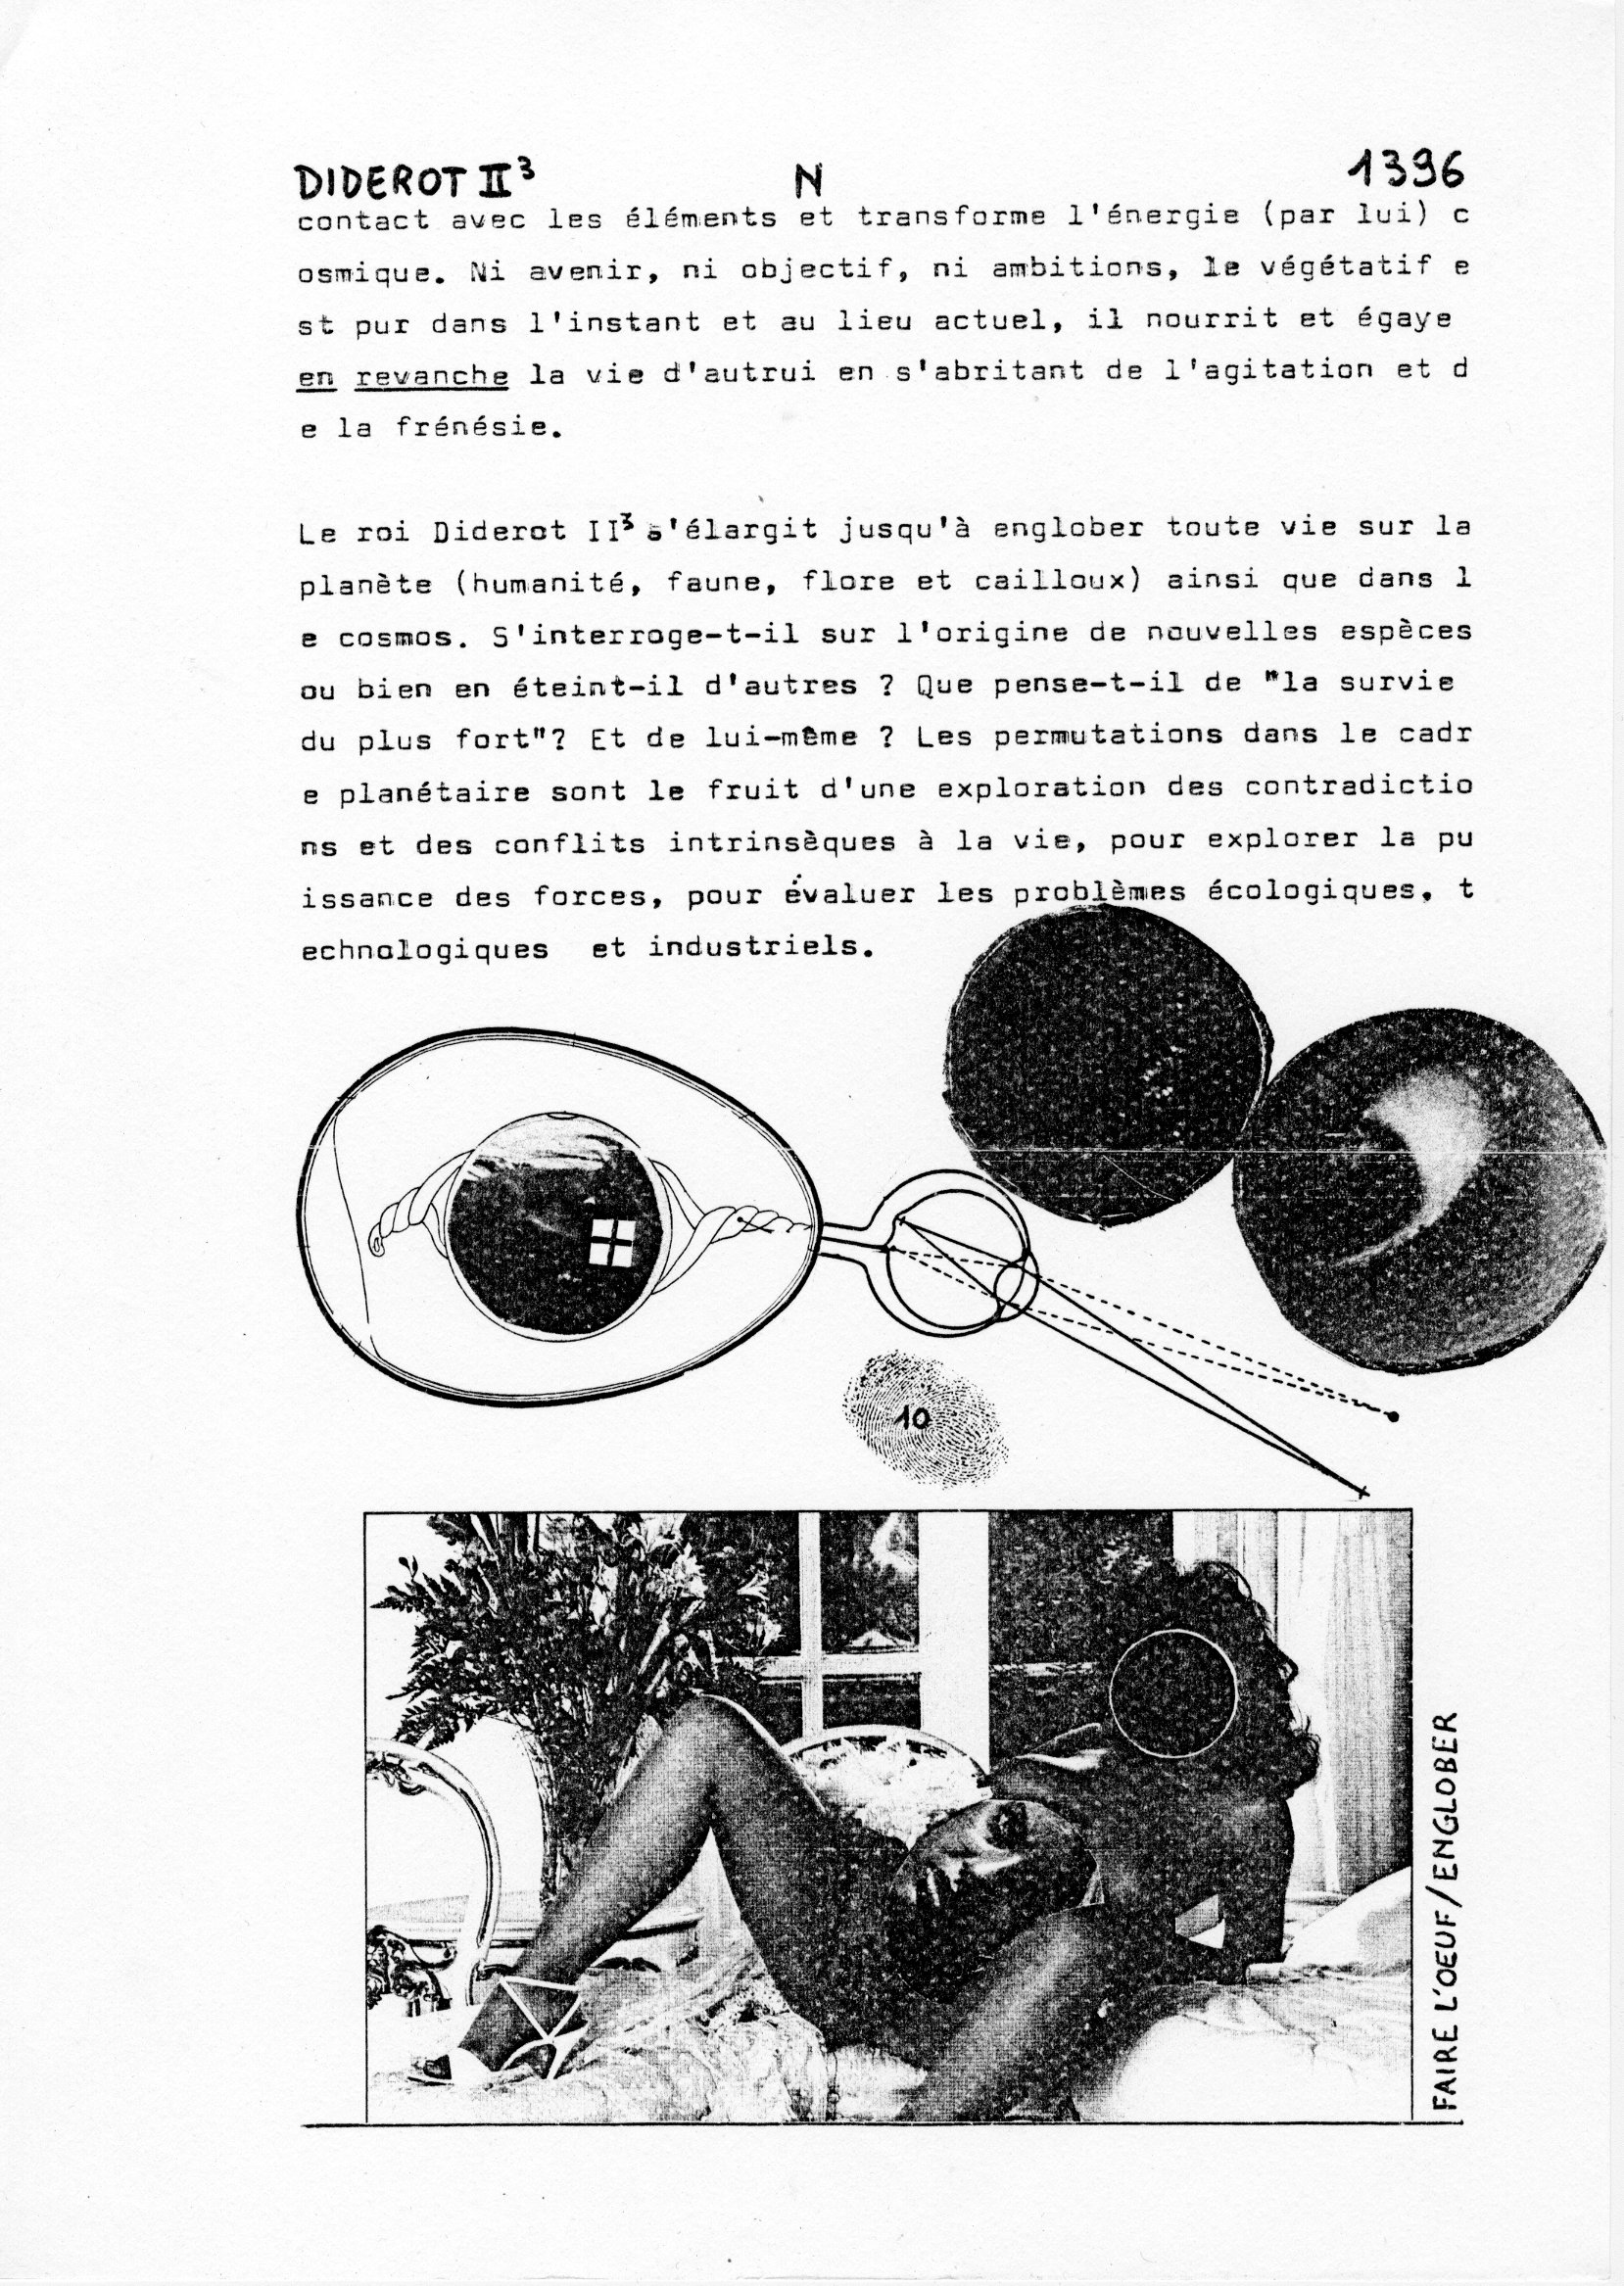 page 1396 Diderot II p3 N